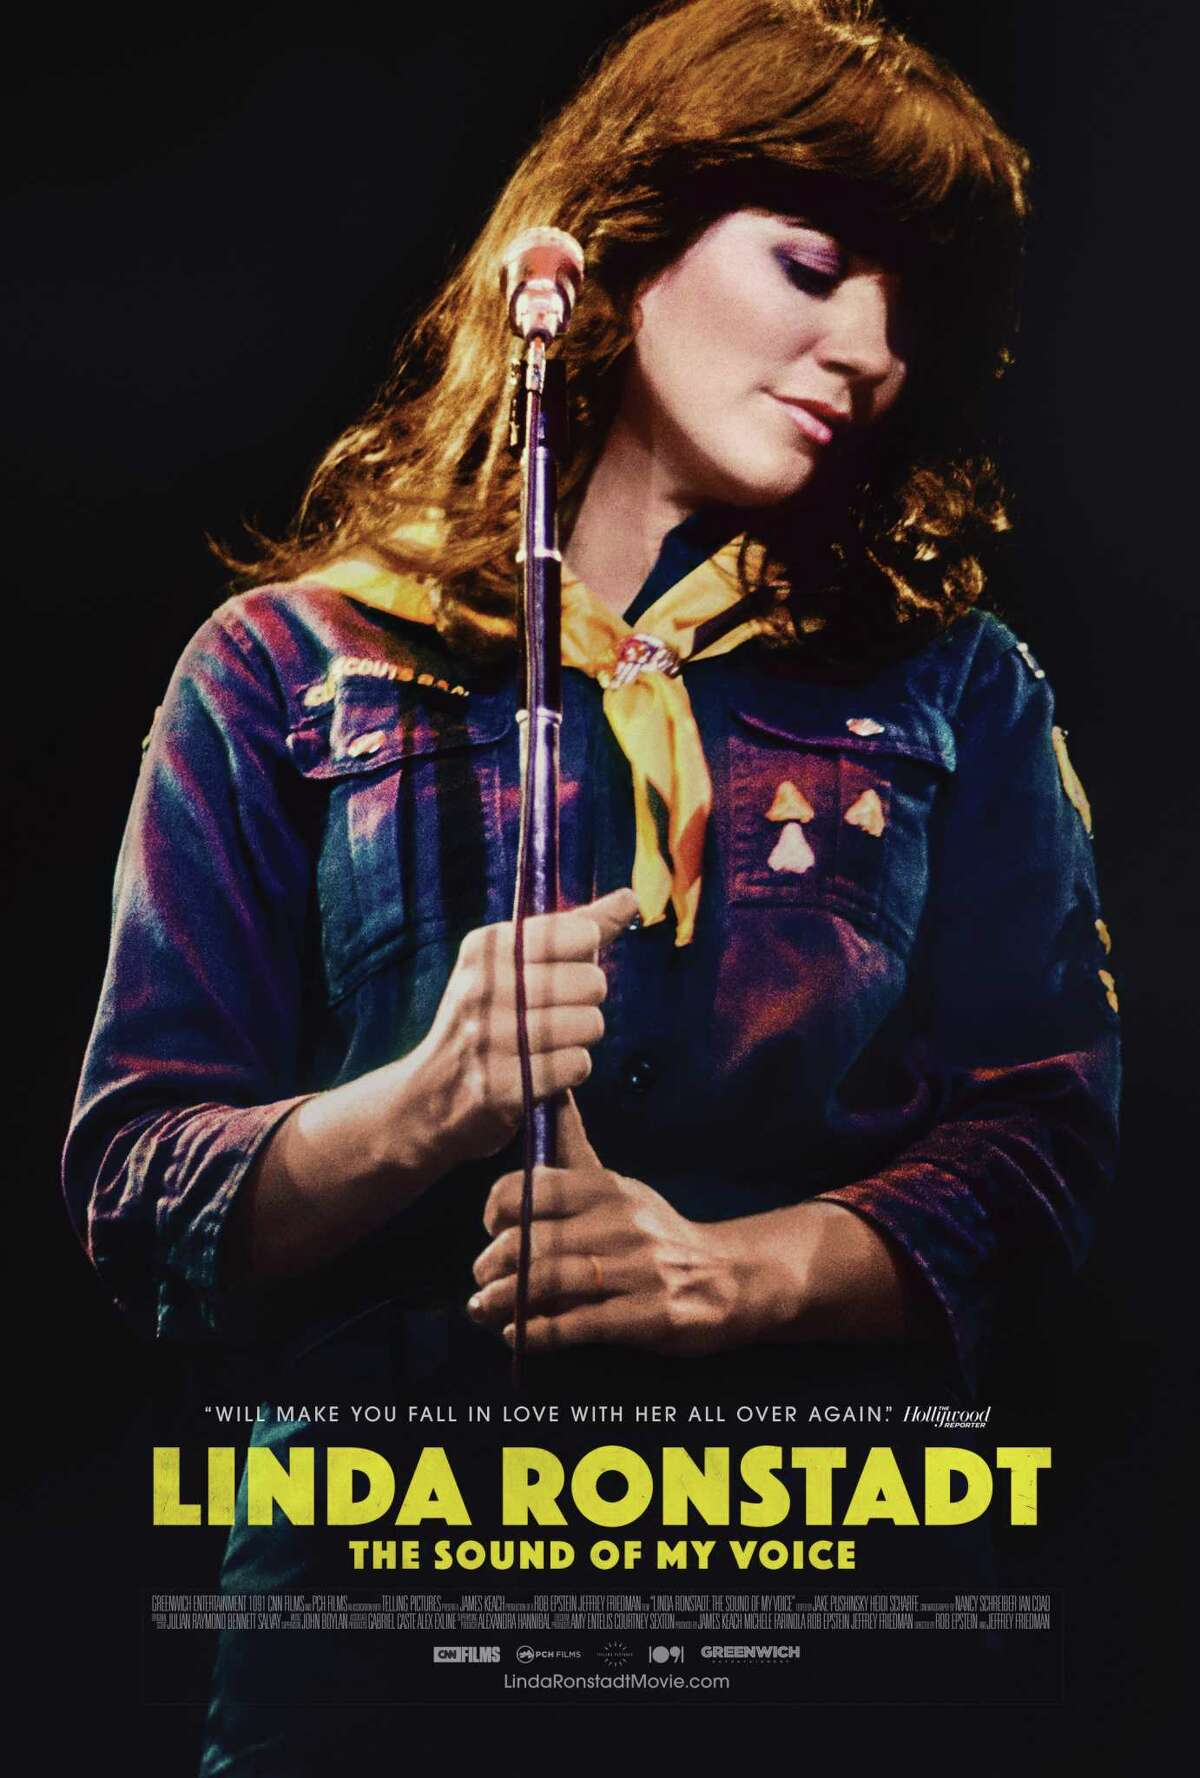 Linda Ronstadt: The Sound of My Voice will be screened on Jan. 21 at 7:30 p.m. at the Fairfield Theatre Company, 70 Sanford Street, Fairfield. Tickets are $10. For more information, visit fairfieldtheatre.org.